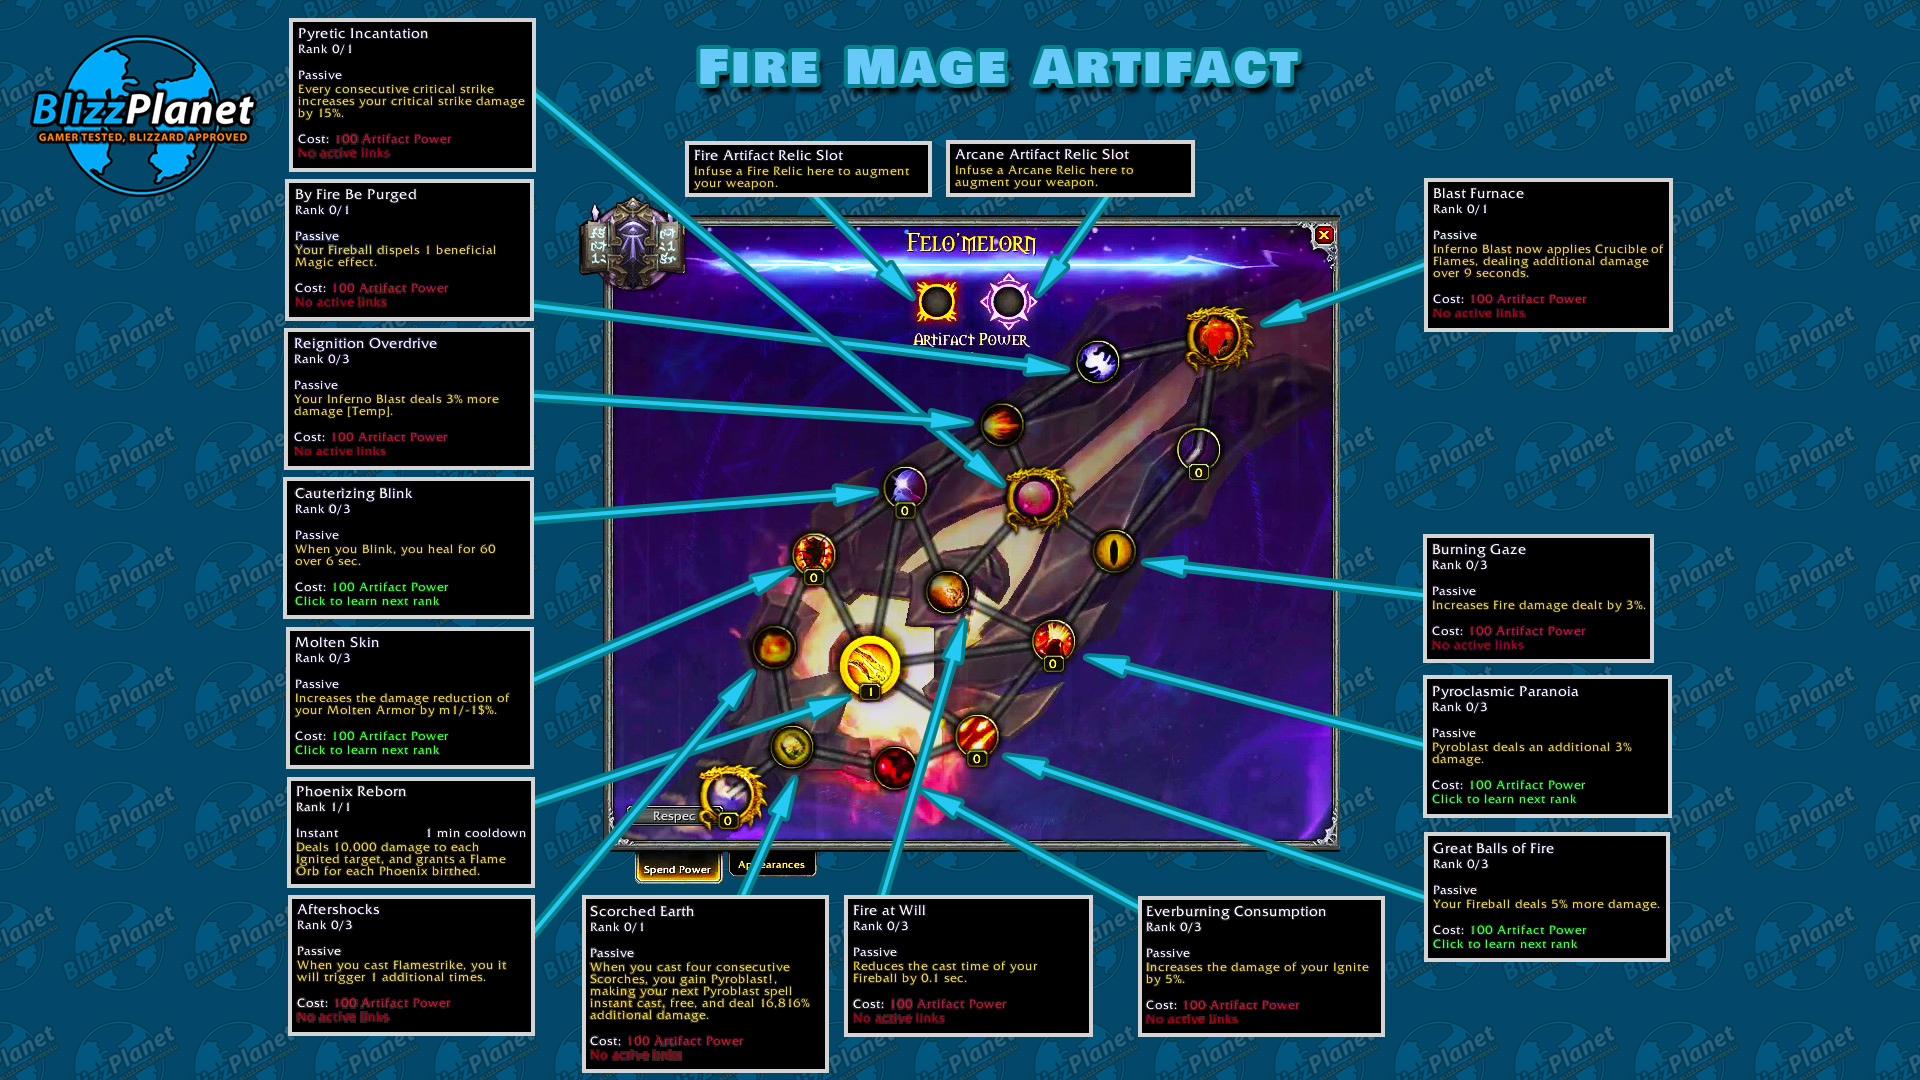 fire-mage-artifact-forge